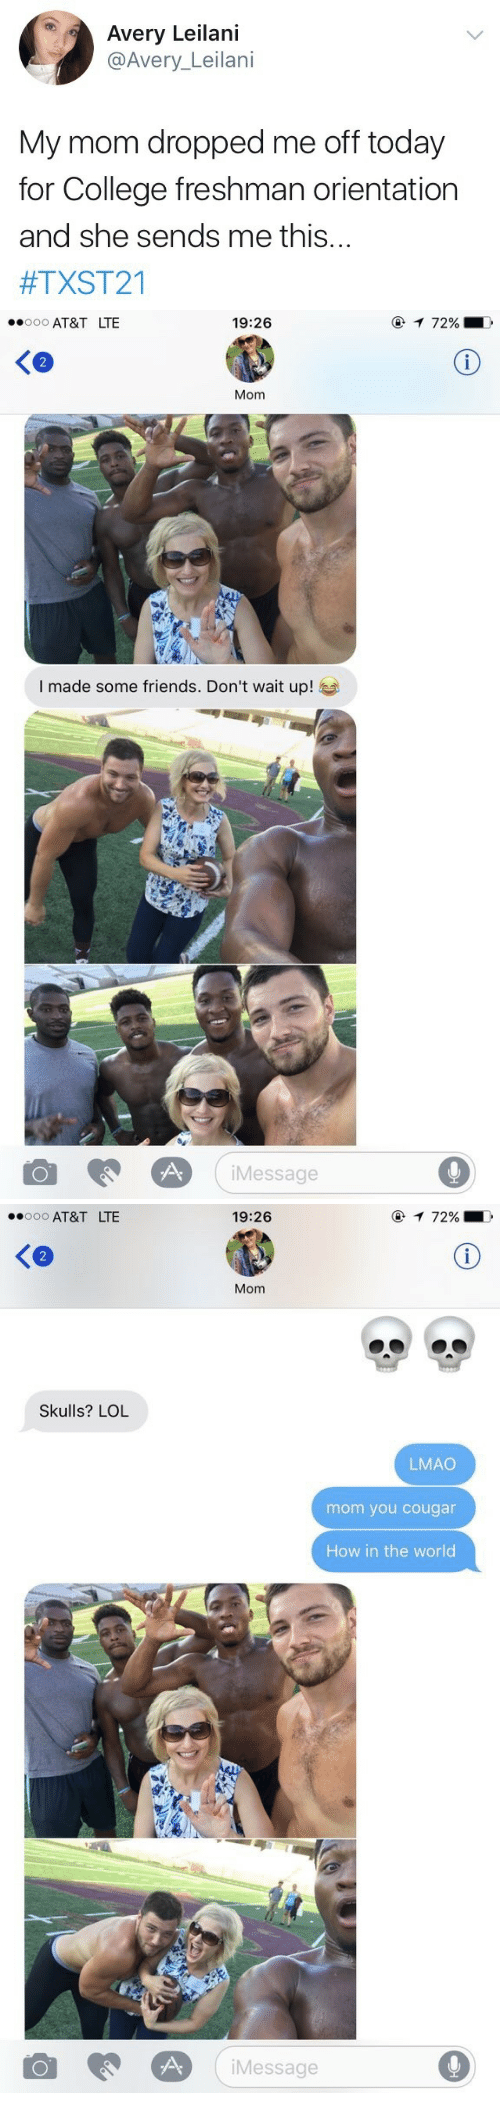 College, Friends, and Lmao: Avery Leilani  @Avery_Leilani  My mom dropped me off today  for College freshman orientation  and she sends me this...  #TXST21   AT&T LTE  19:26  2  Mom  I made some friends. Don't wait up!  iMessage  9   AT&T LTE  19:26  Ke  Mom  Skulls? LOL  LMAO  mom you cougar  How in the world  Message  9